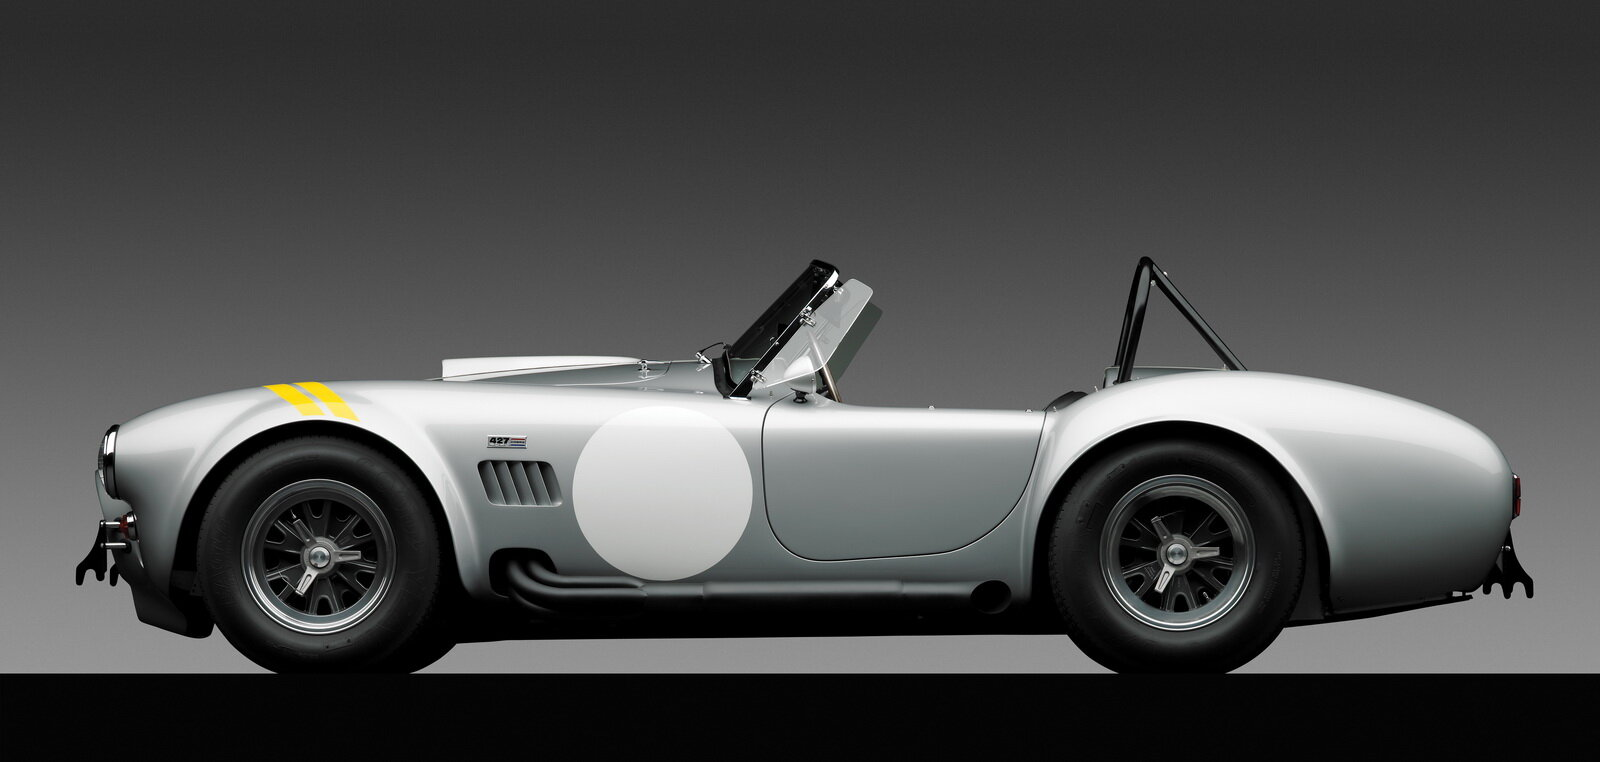 shelby-cobra-427-is-up-for-sale_100638132_h.jpg